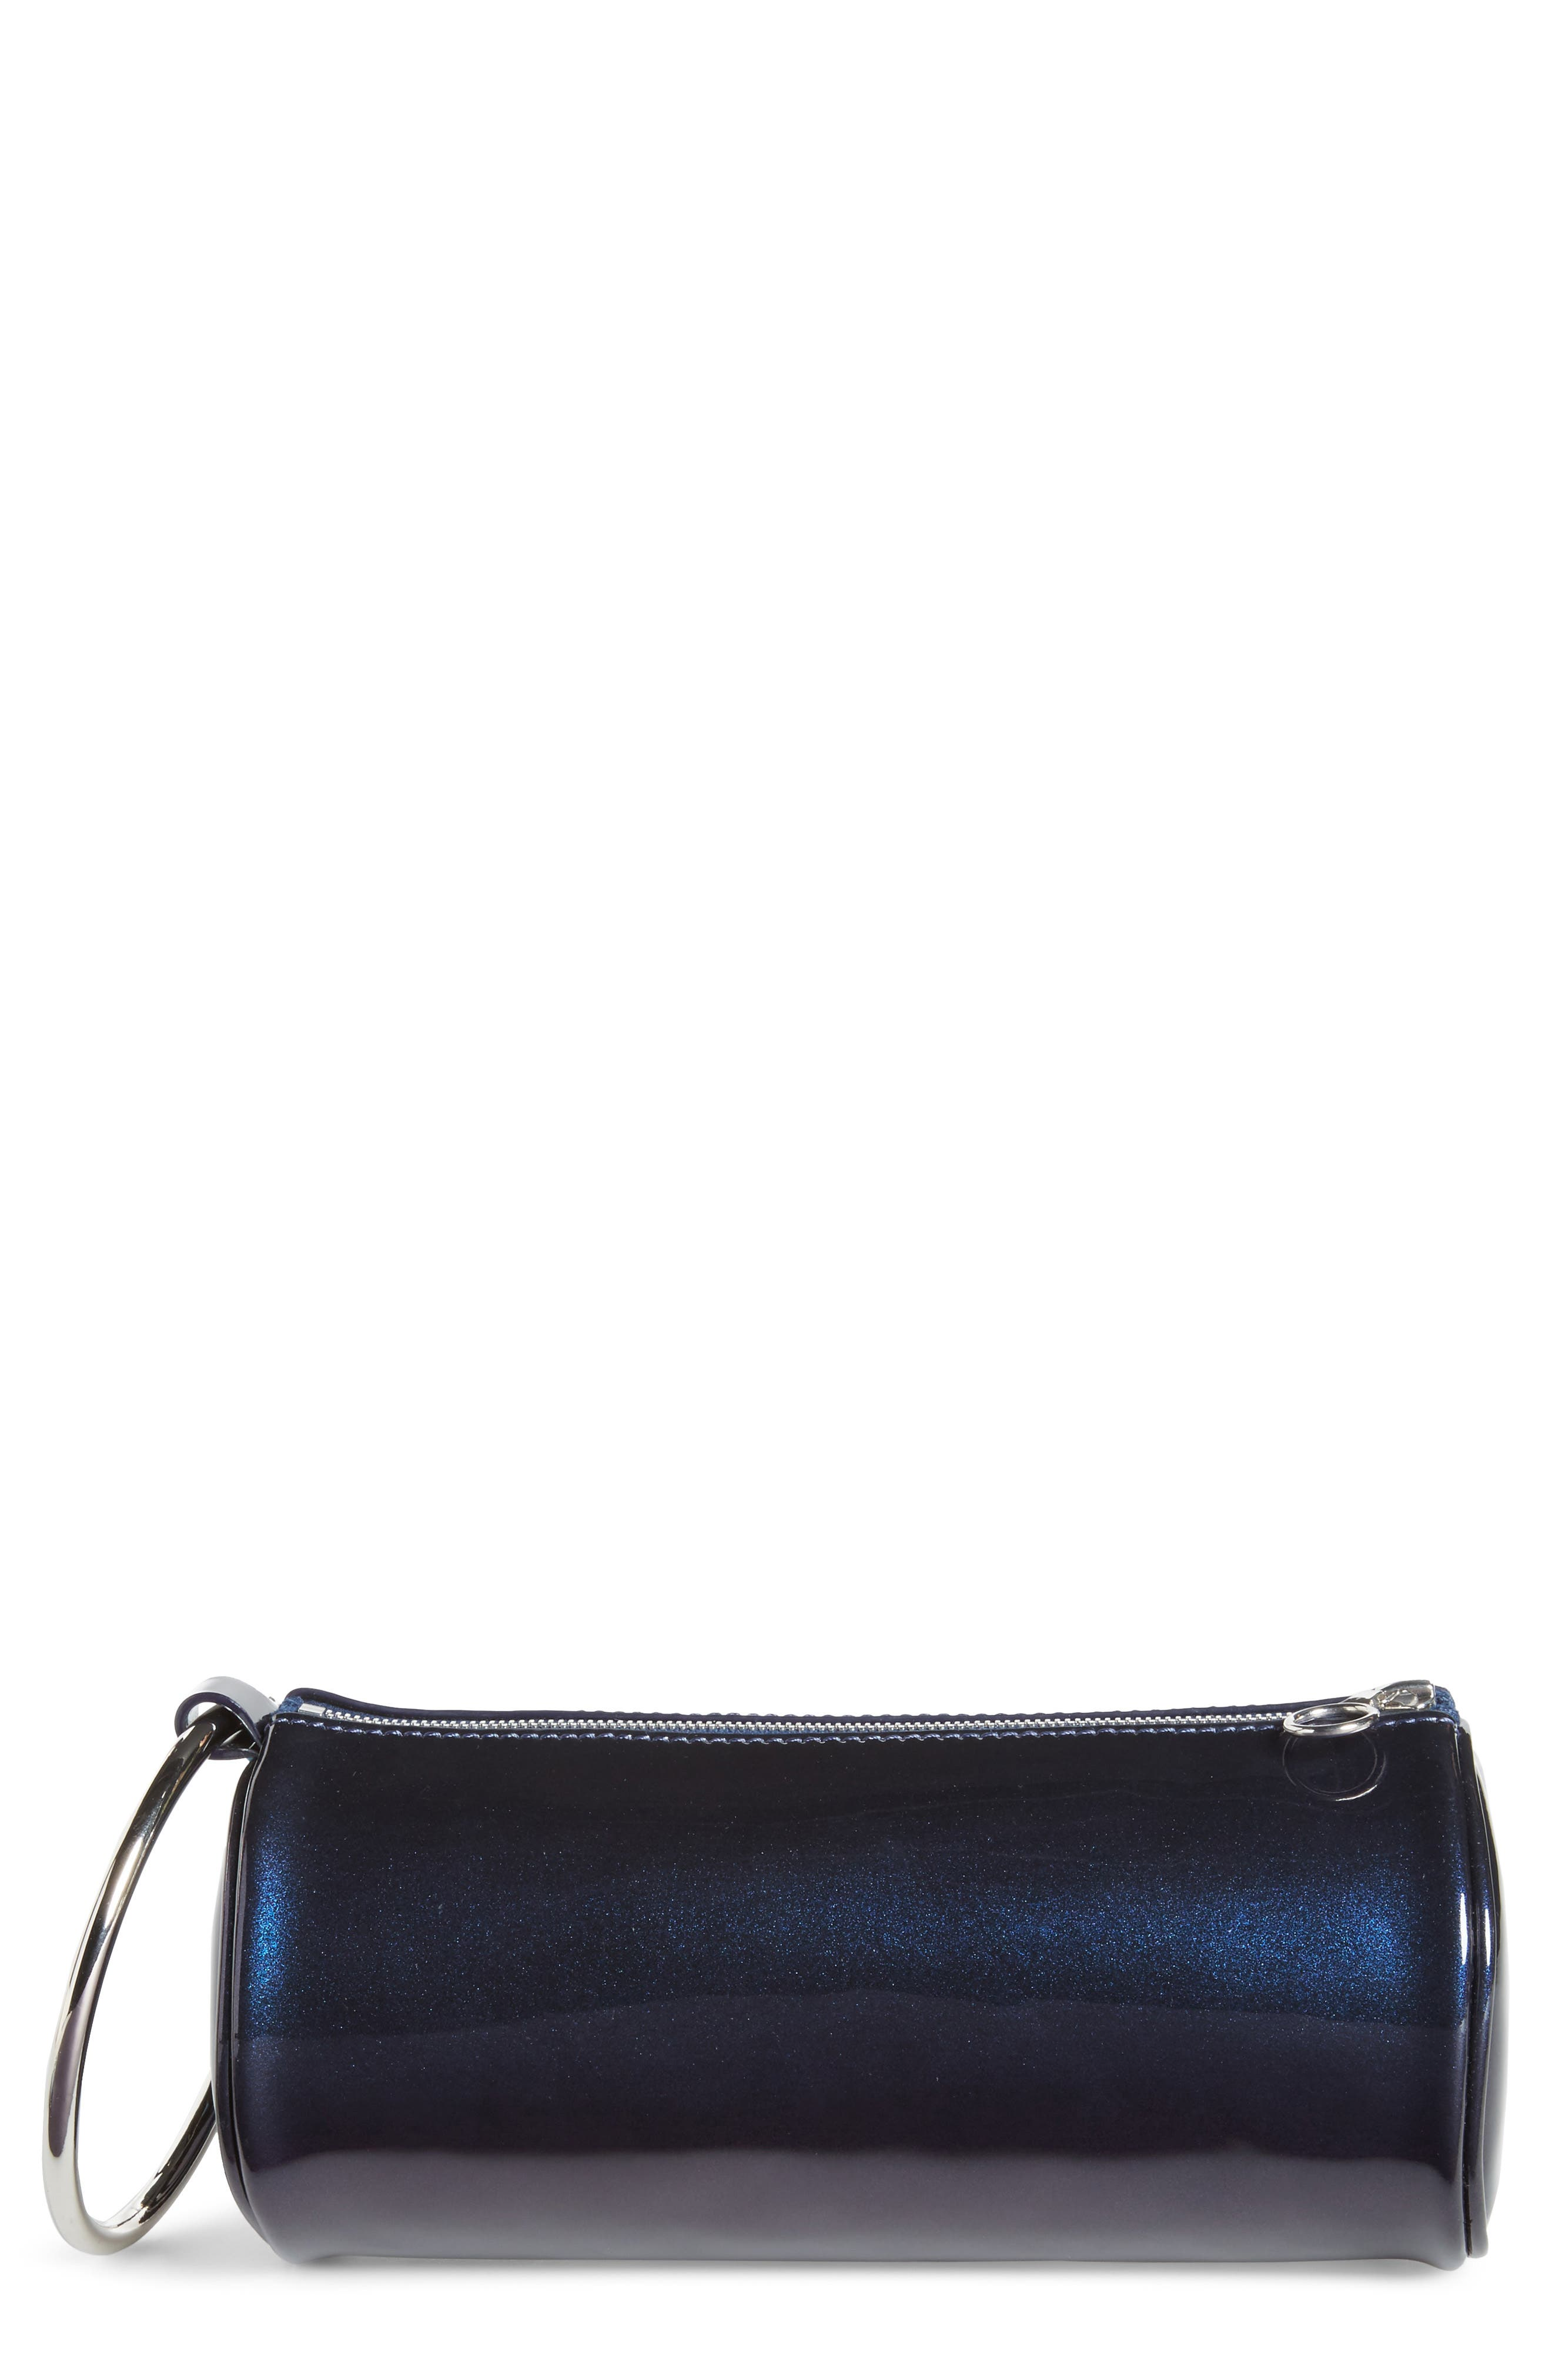 Alternate Image 1 Selected - KARA Iridescent Leather Duffel Wristlet Clutch